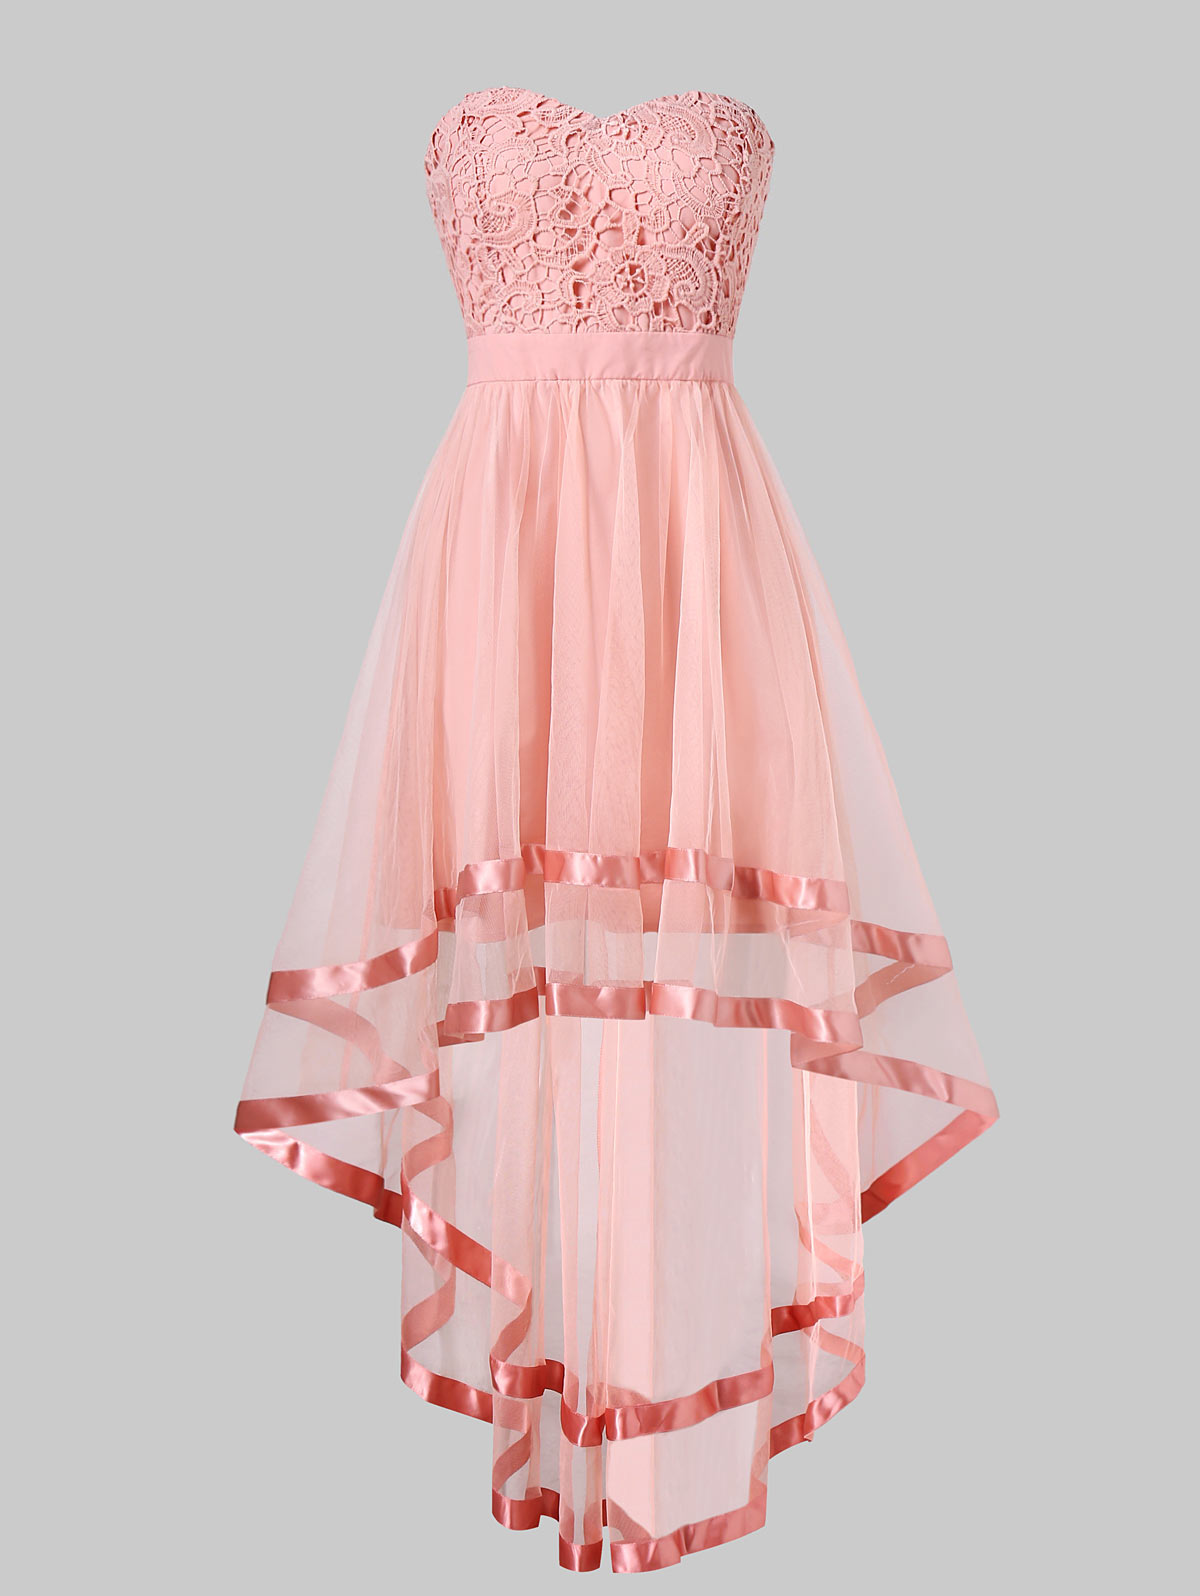 Wipalo Pink Chiffon High Low Party Dress Summer Women Dresses Strapless Dress Sleeveless Short Front Long Back Party Gowns